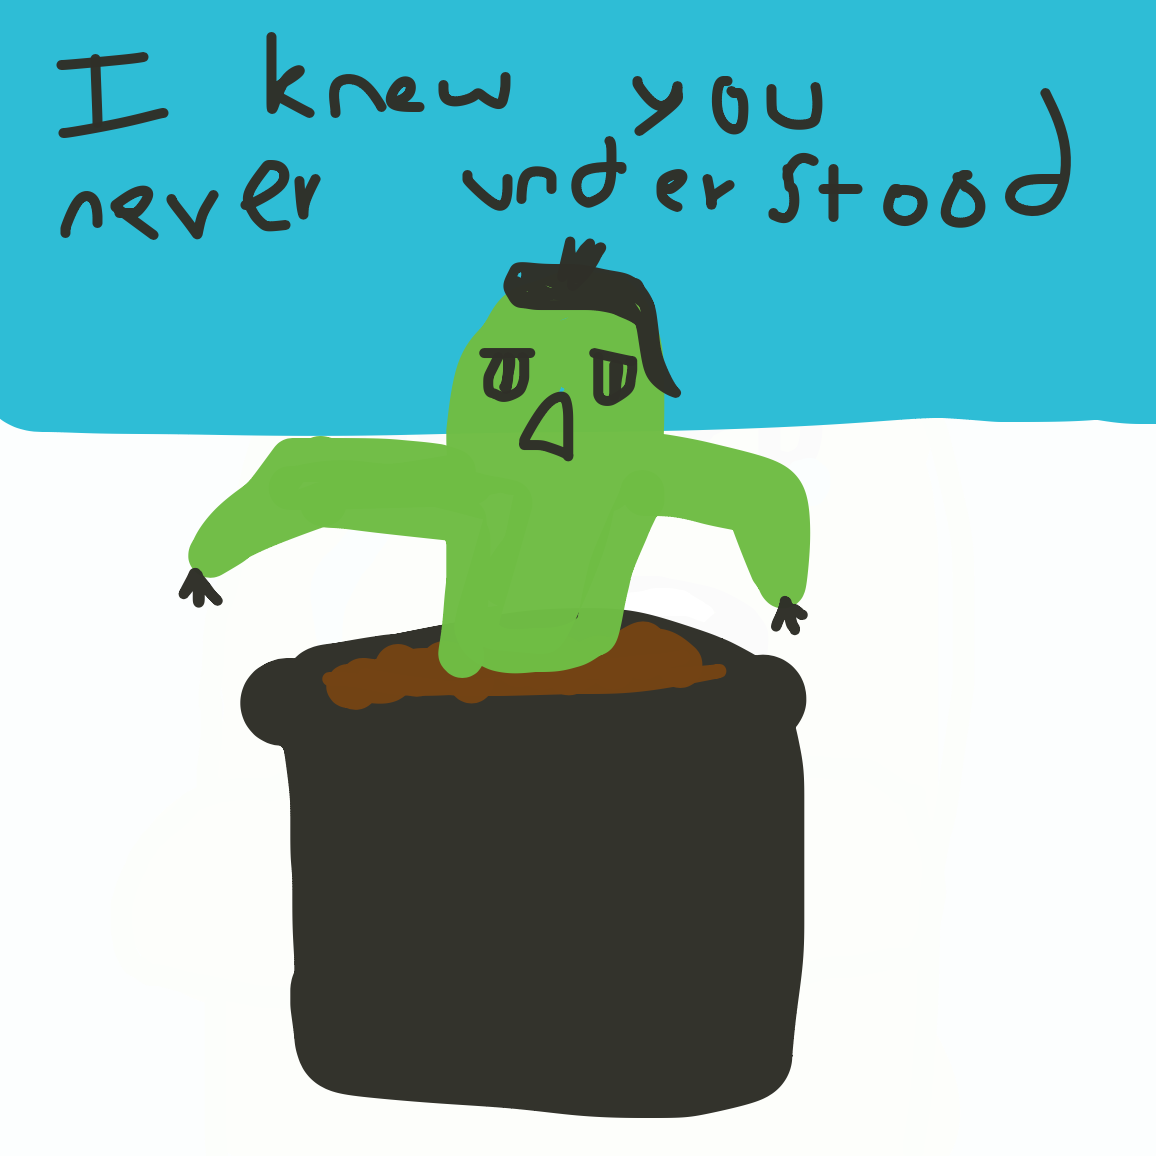 emo cactus  - Online Drawing Game Comic Strip Panel by unfortunate fool